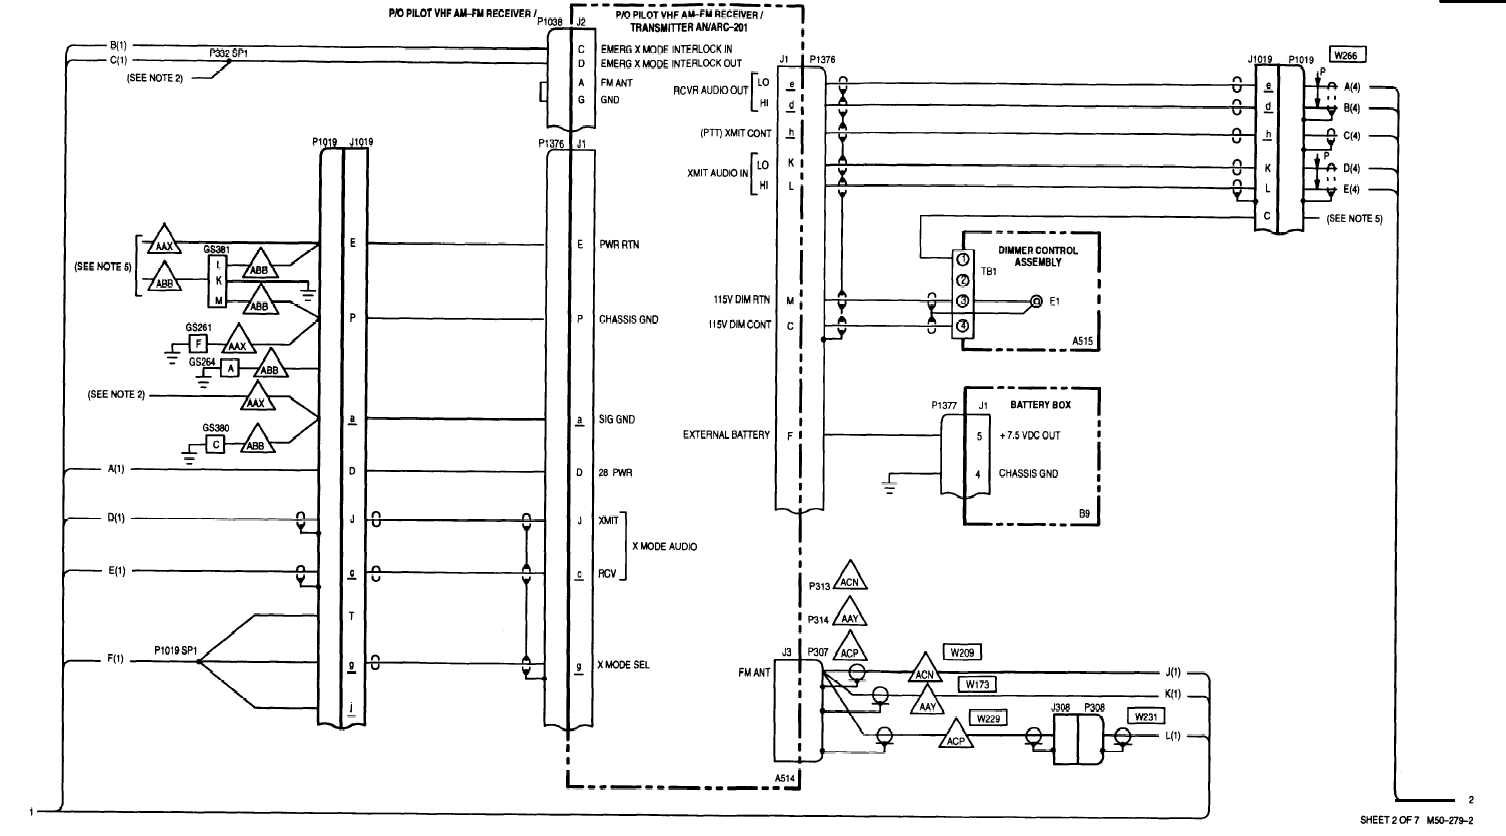 hight resolution of four winds motorhome wiring diagram imageresizertool com forest river rv wiring diagrams rv trailer wiring diagram